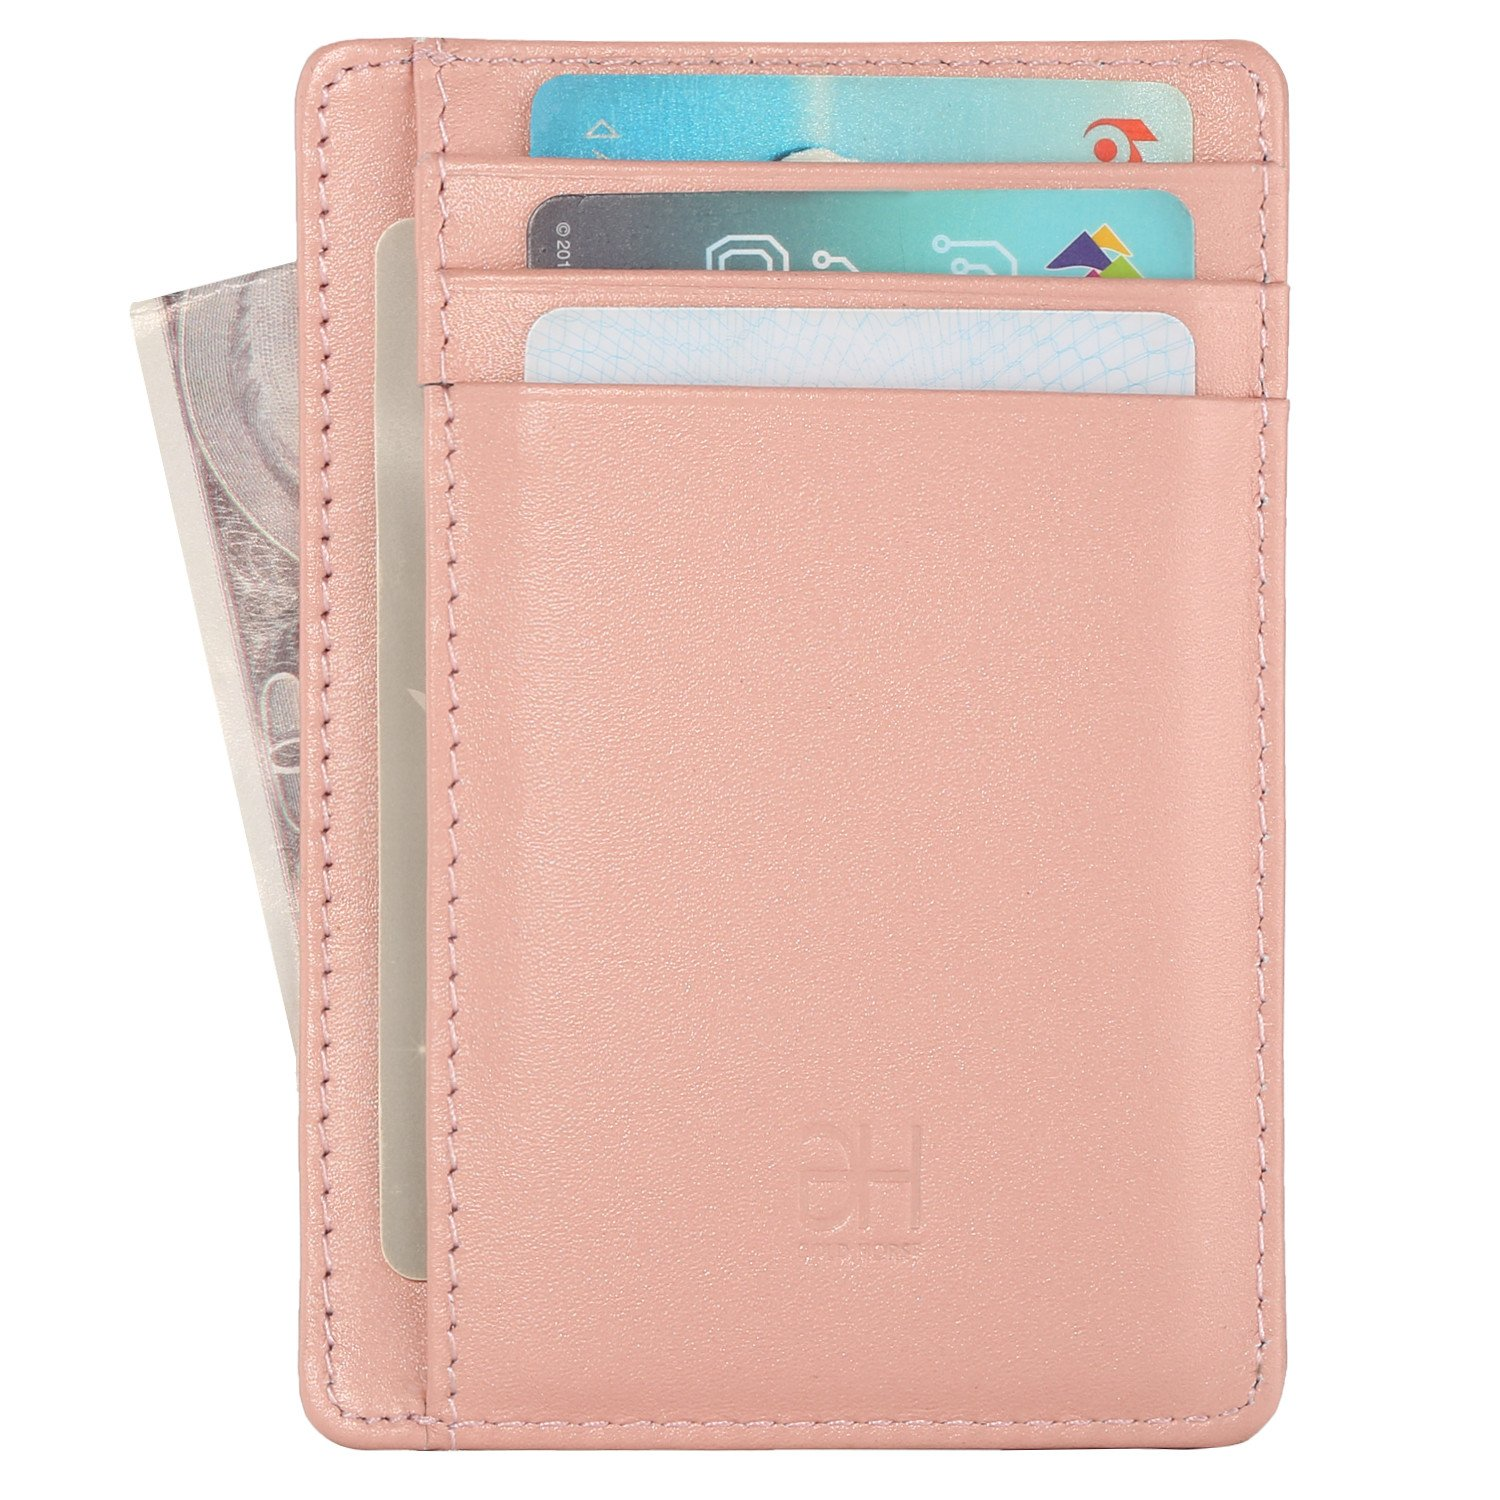 GH GOLD HORSE Slim RFID Blocking Card Holder Minimalist Leather Front Pocket Wallet for Women